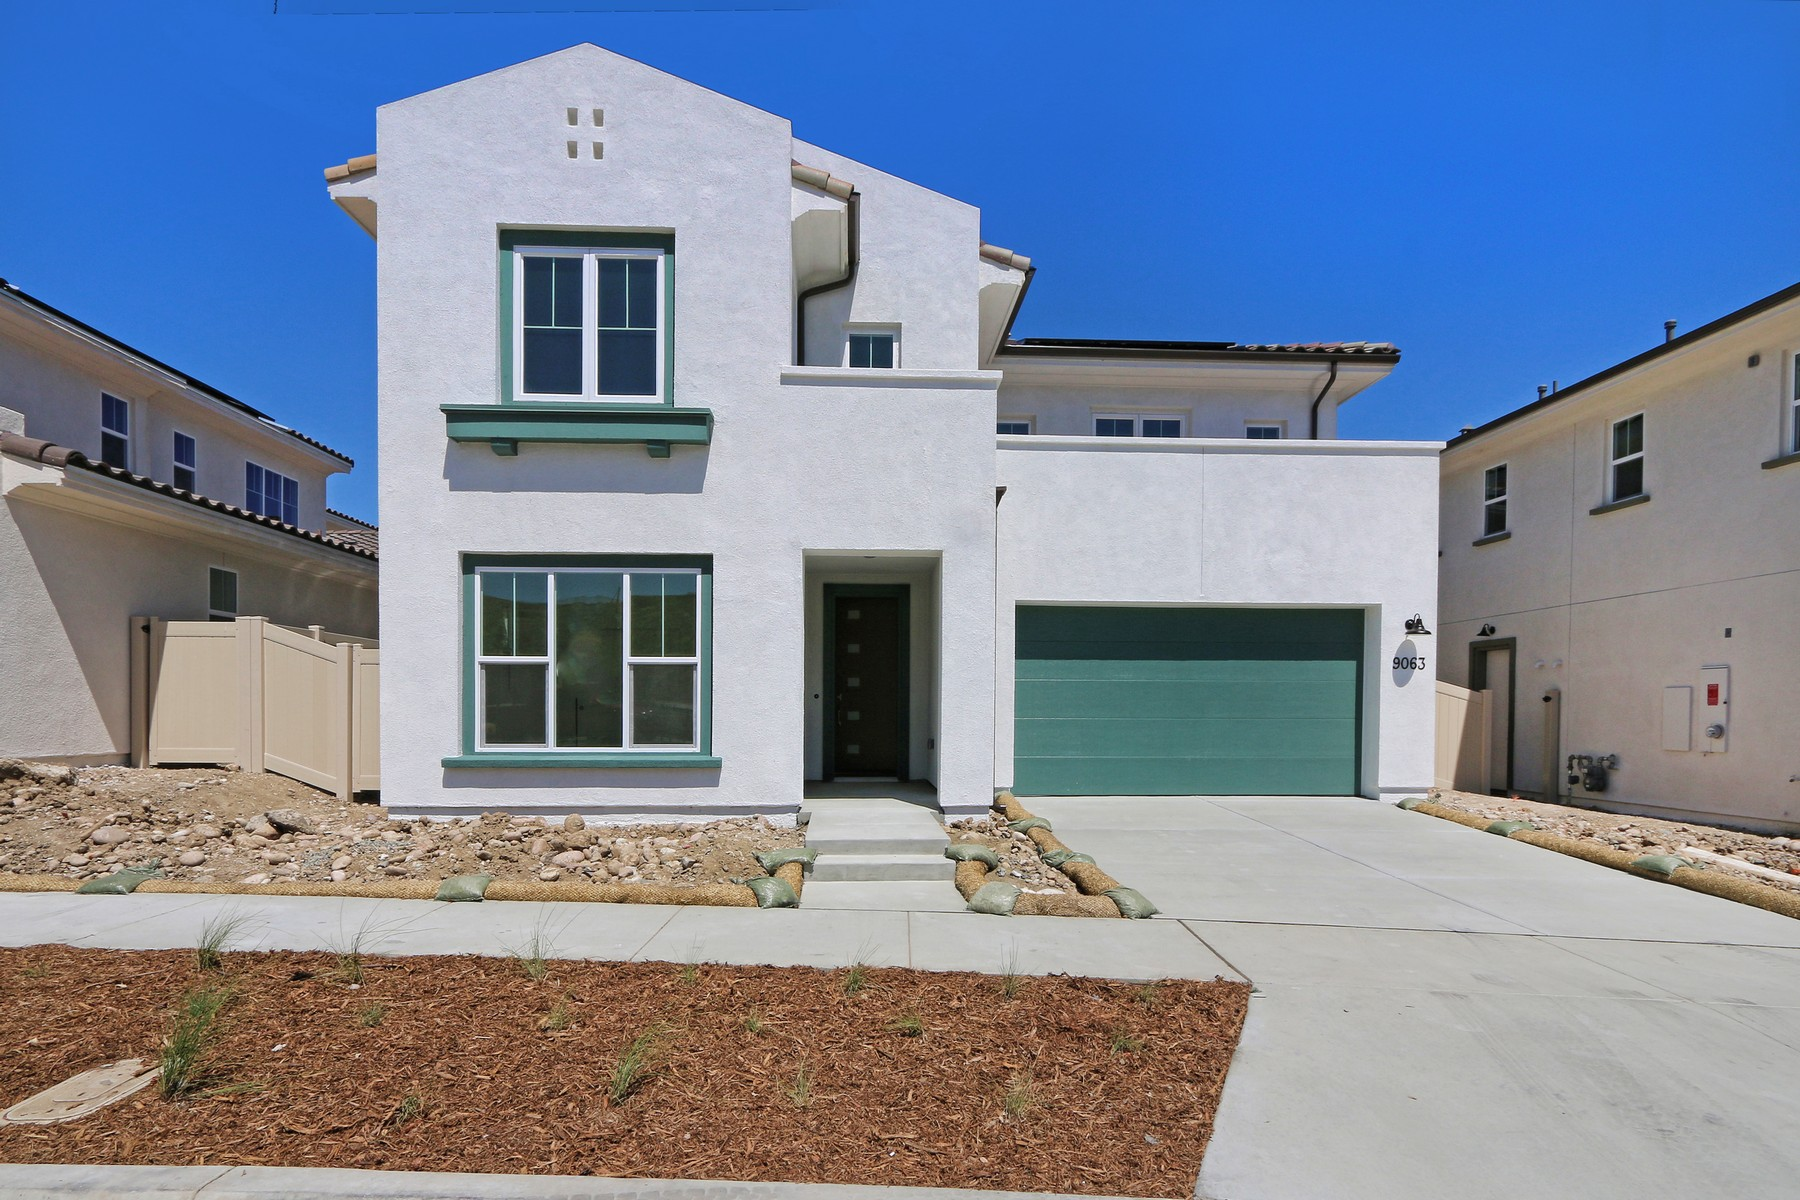 Single Family Homes for Active at New Home Construction in Santee! 9063 Trailmark Way Lot 245 Santee, California 92071 United States